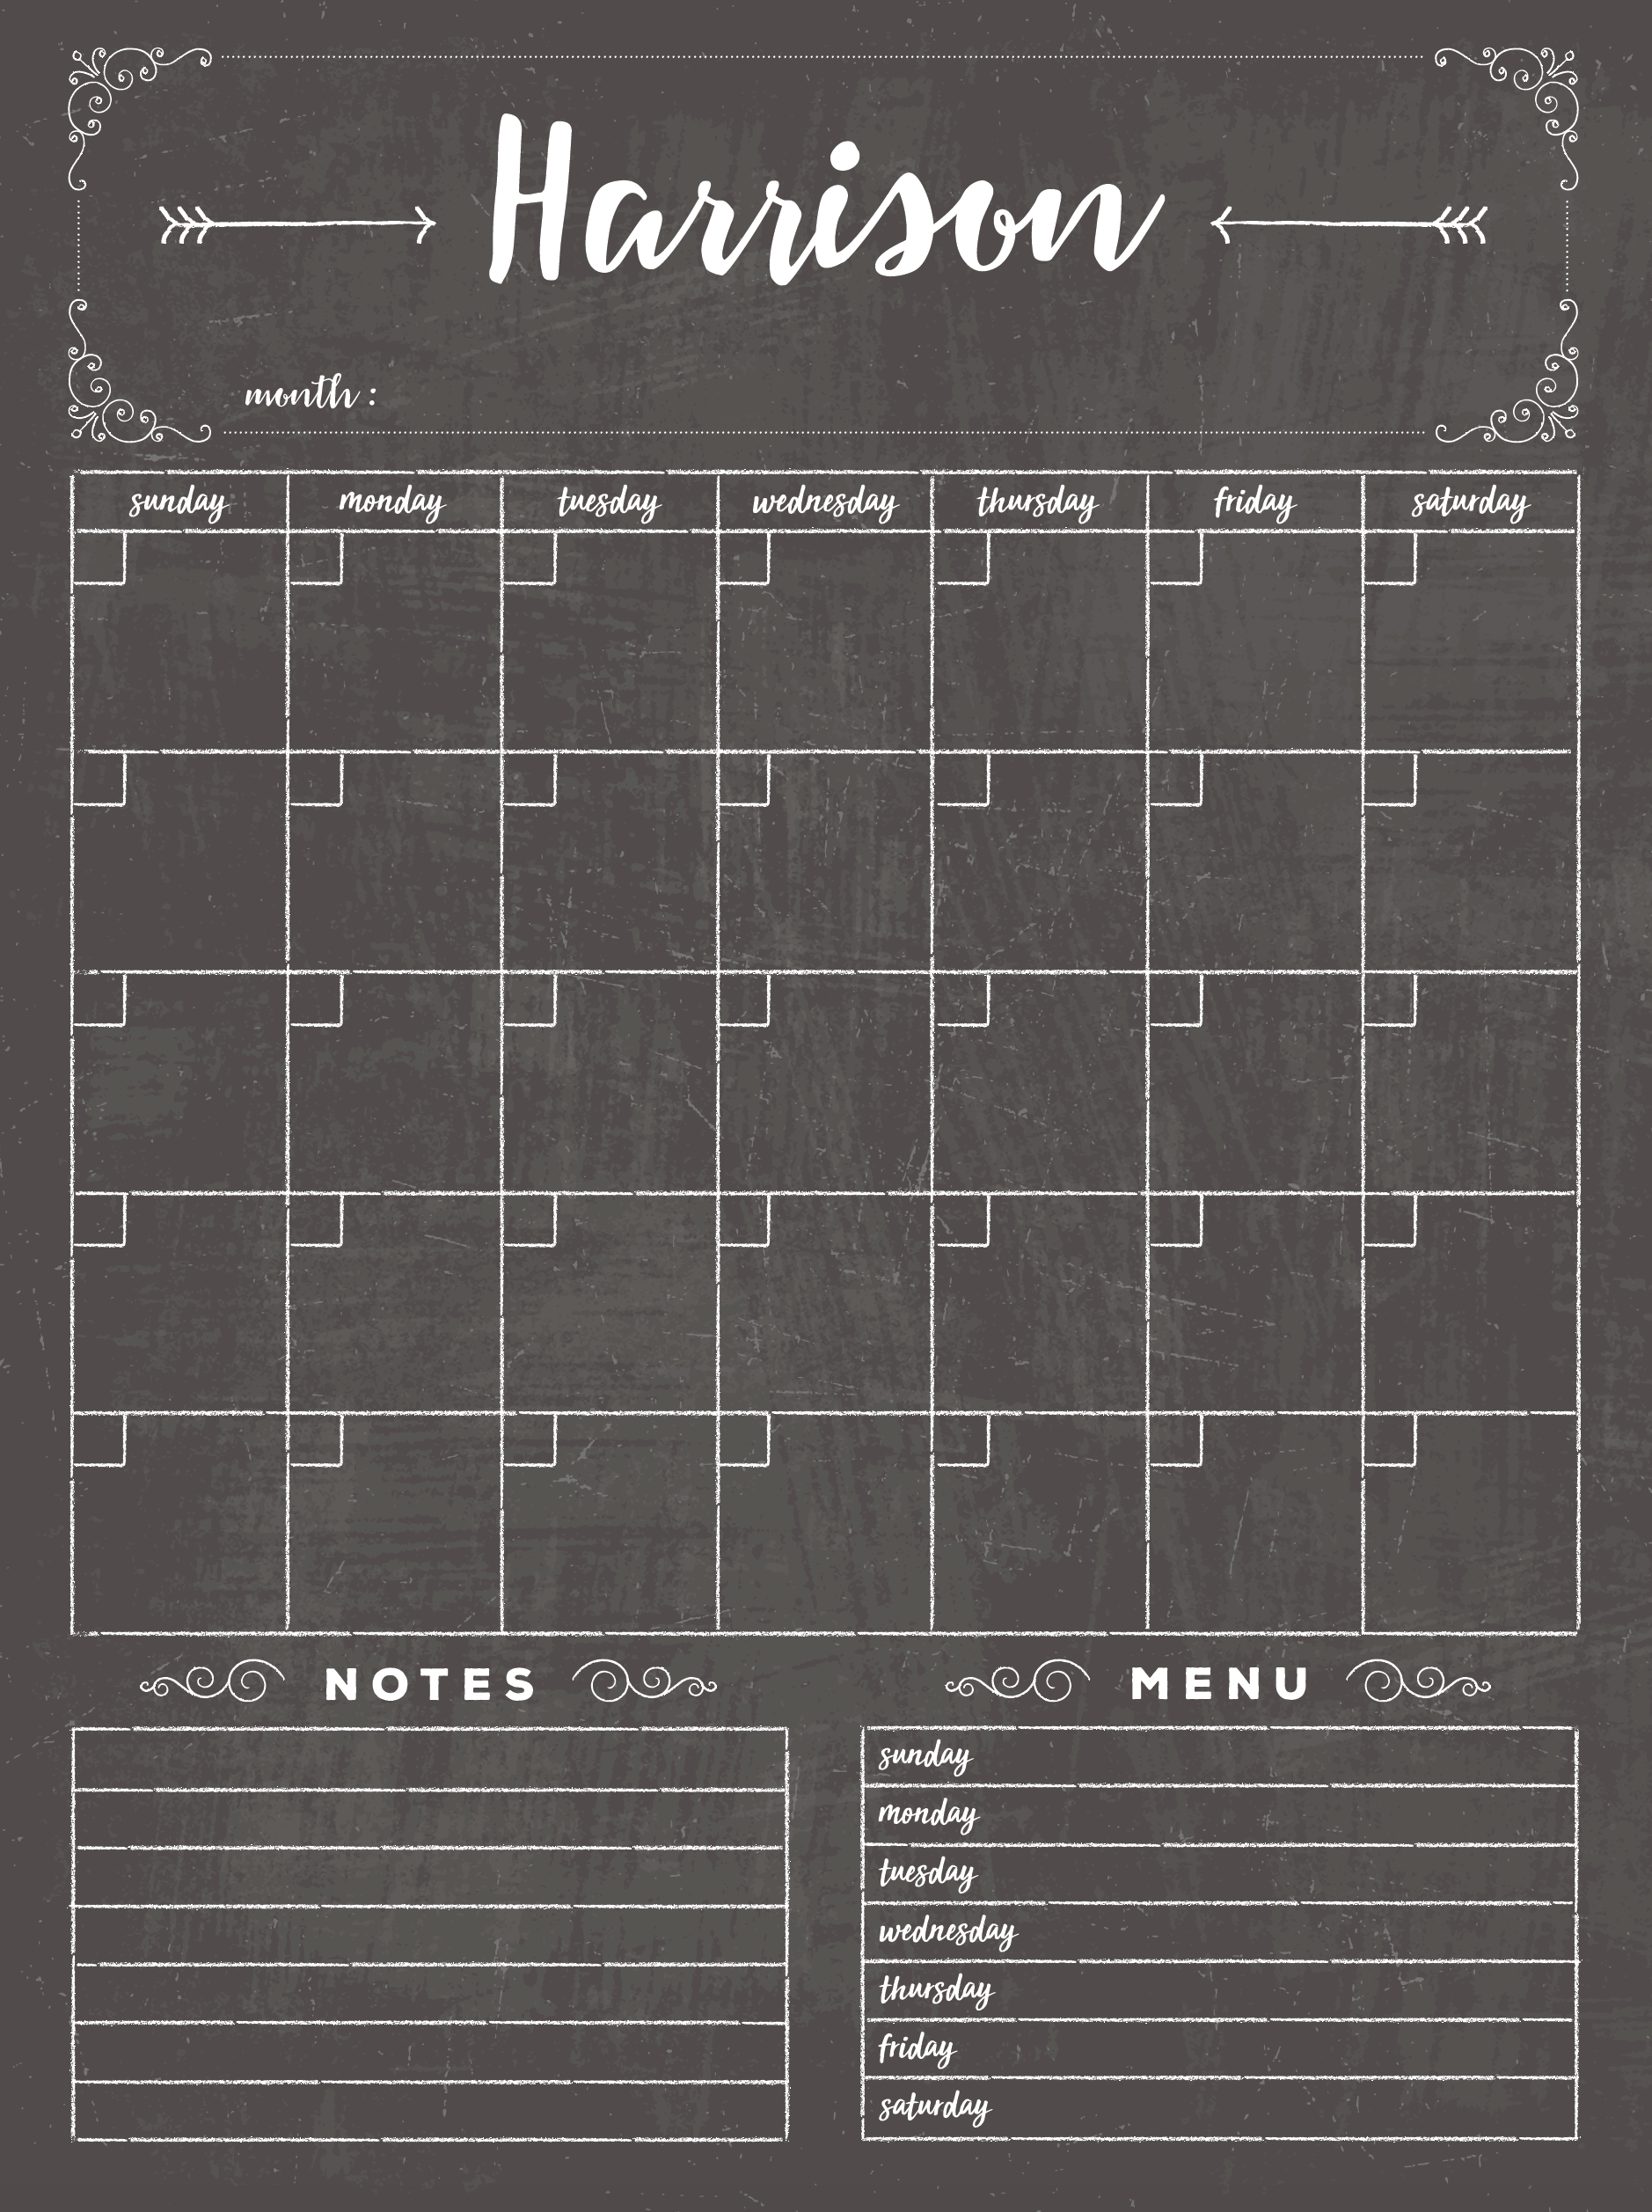 Dry Erase Chalkboard Calendar Professionally Designed, Framed And Ready To